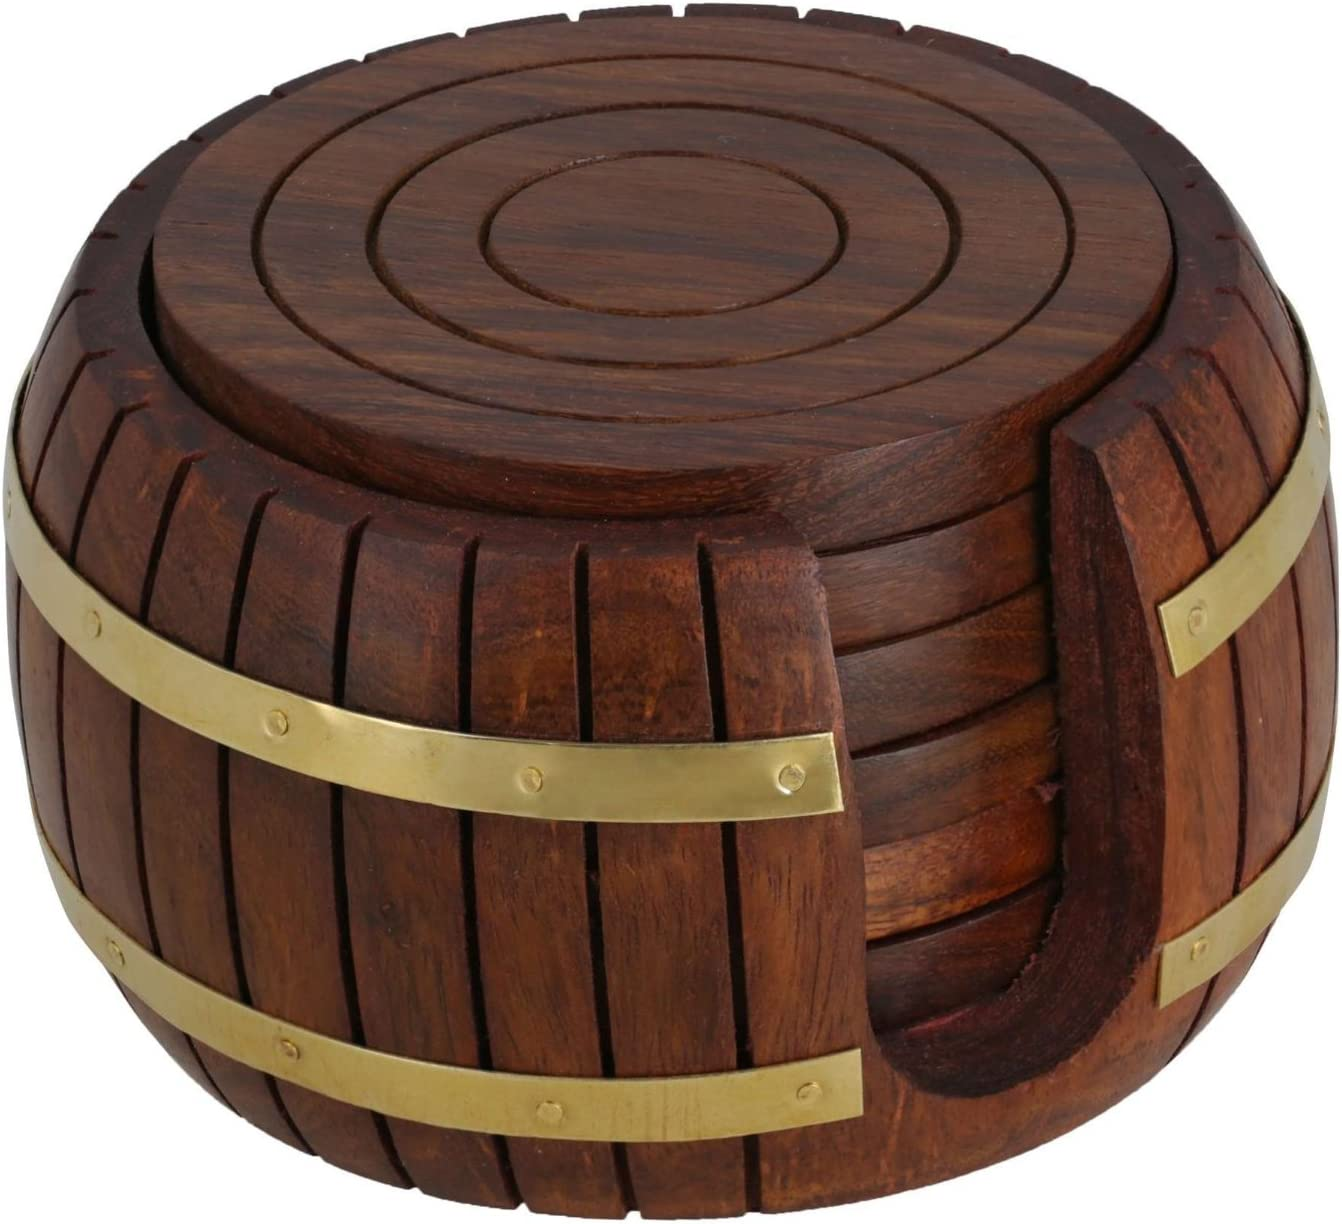 Handmade Barrel Shaped Wooden Tea Coaster - Set of 6 Drink Coaster Suitable for Wine Glasses, Beer Bottles, Whiskey Glasses and Any Hot and Cold Drinks